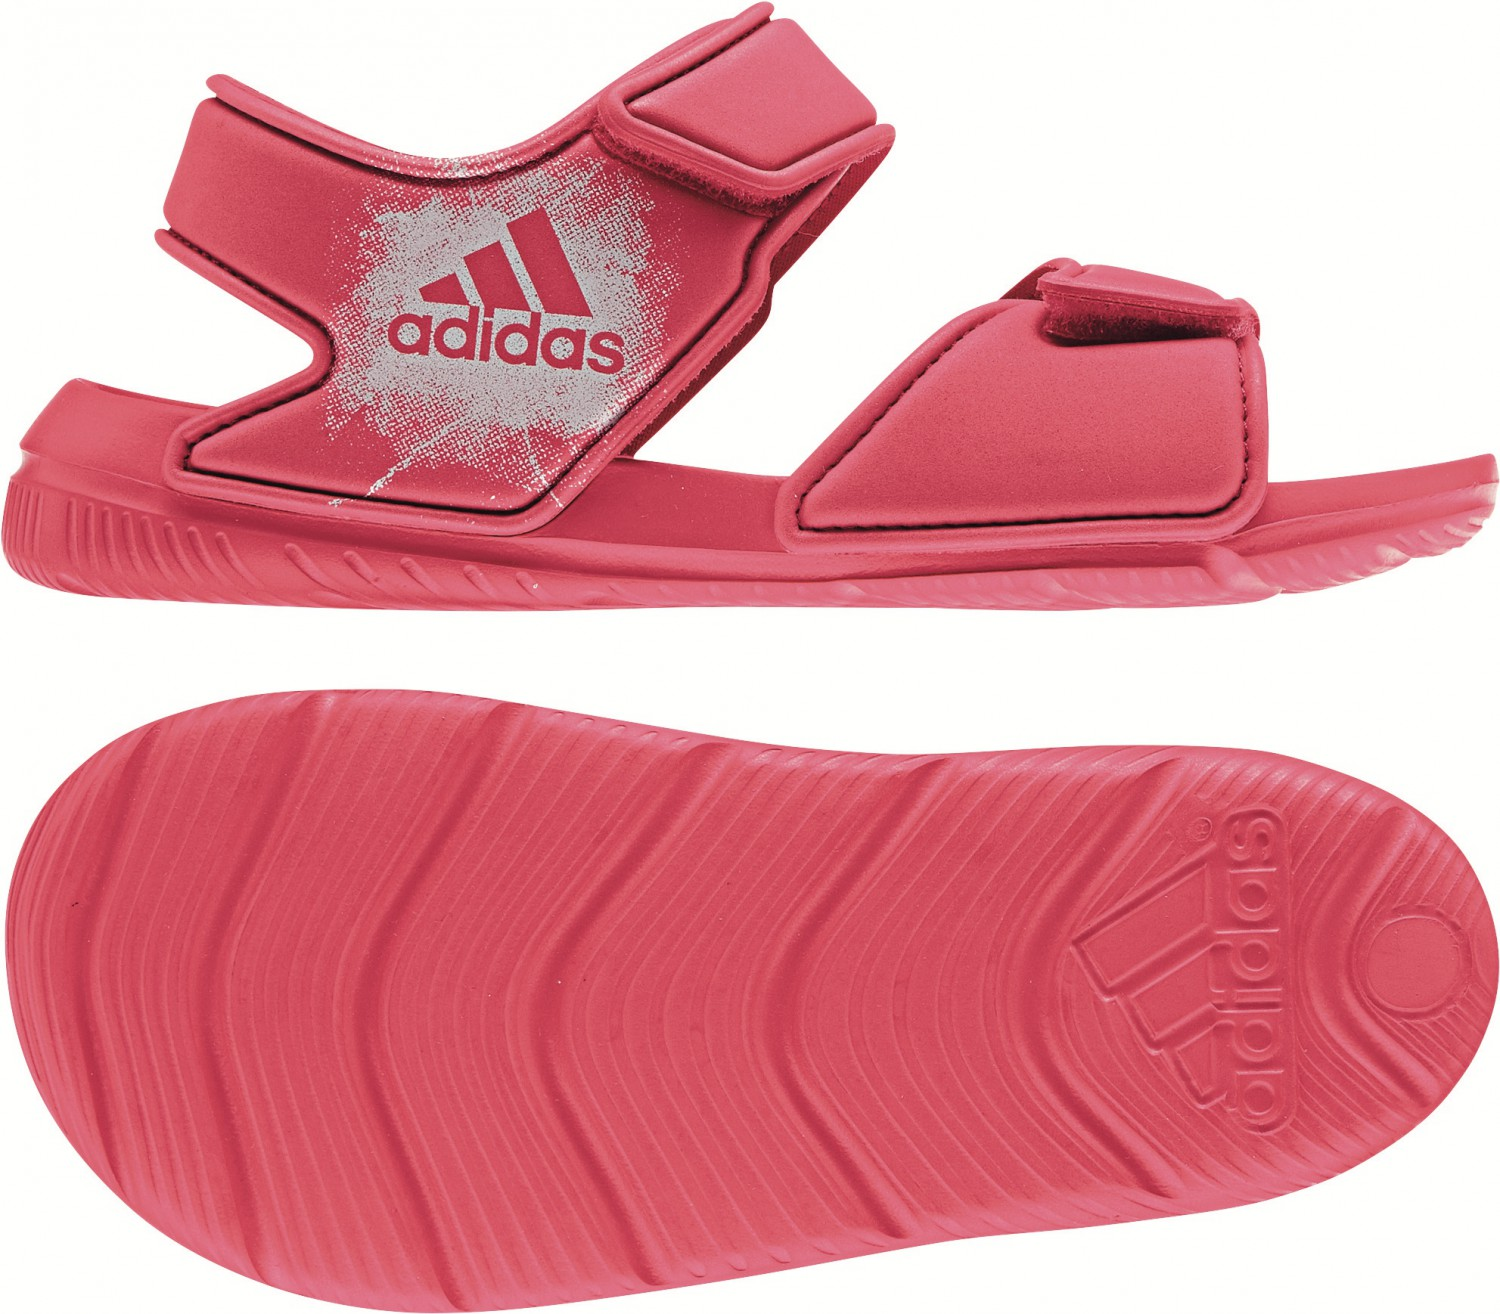 Details about Adidas Kids Water Altaswim C Sandals Water Shoes BA7849 Pink